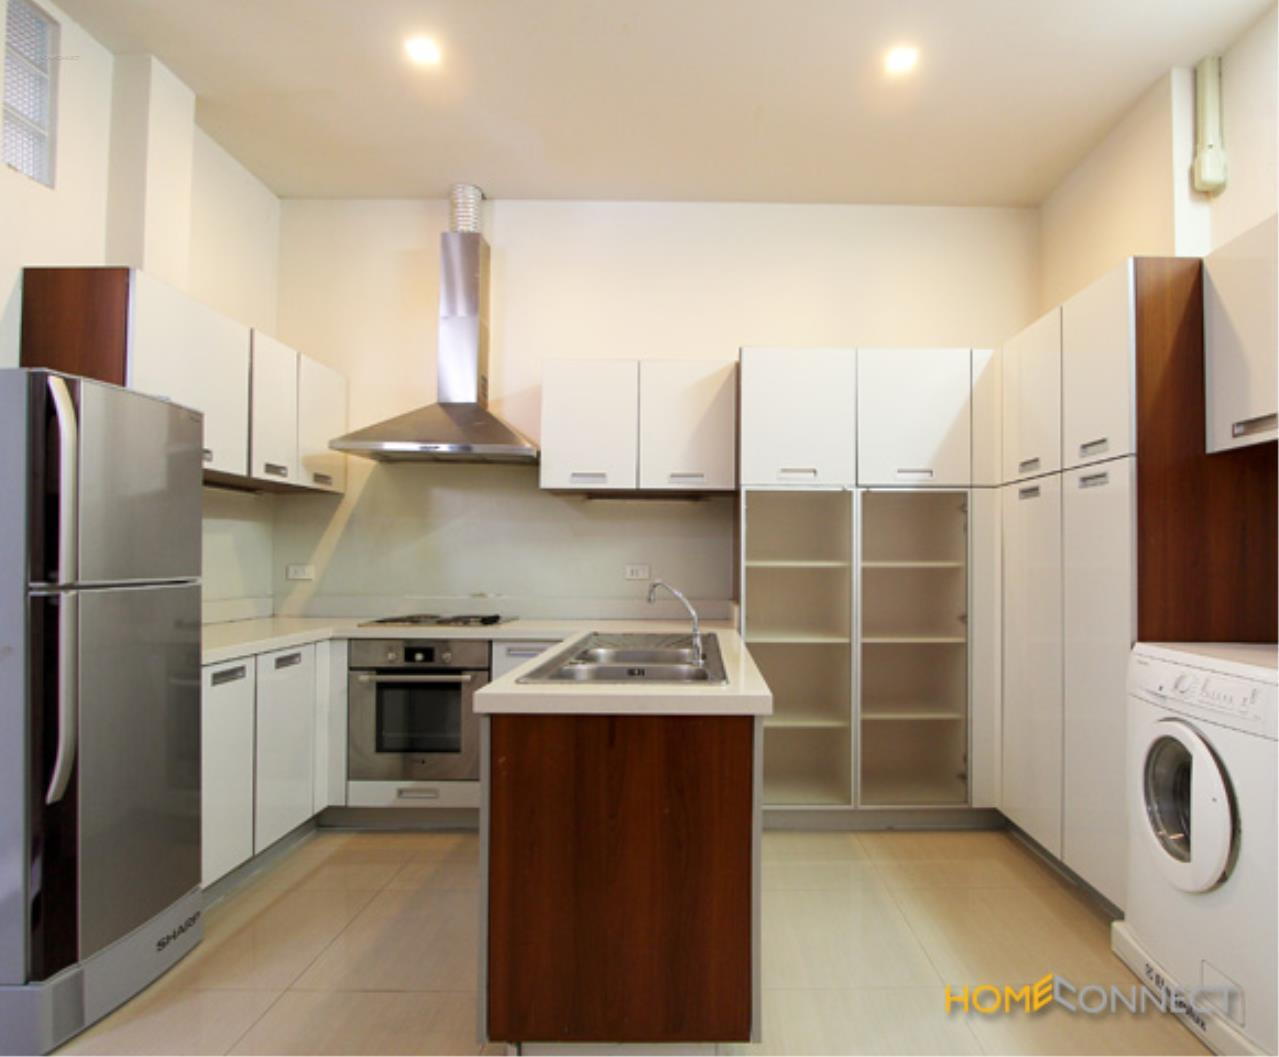 Home Connect Thailand Agency's Single House for rent in Suklhumvit 26  6